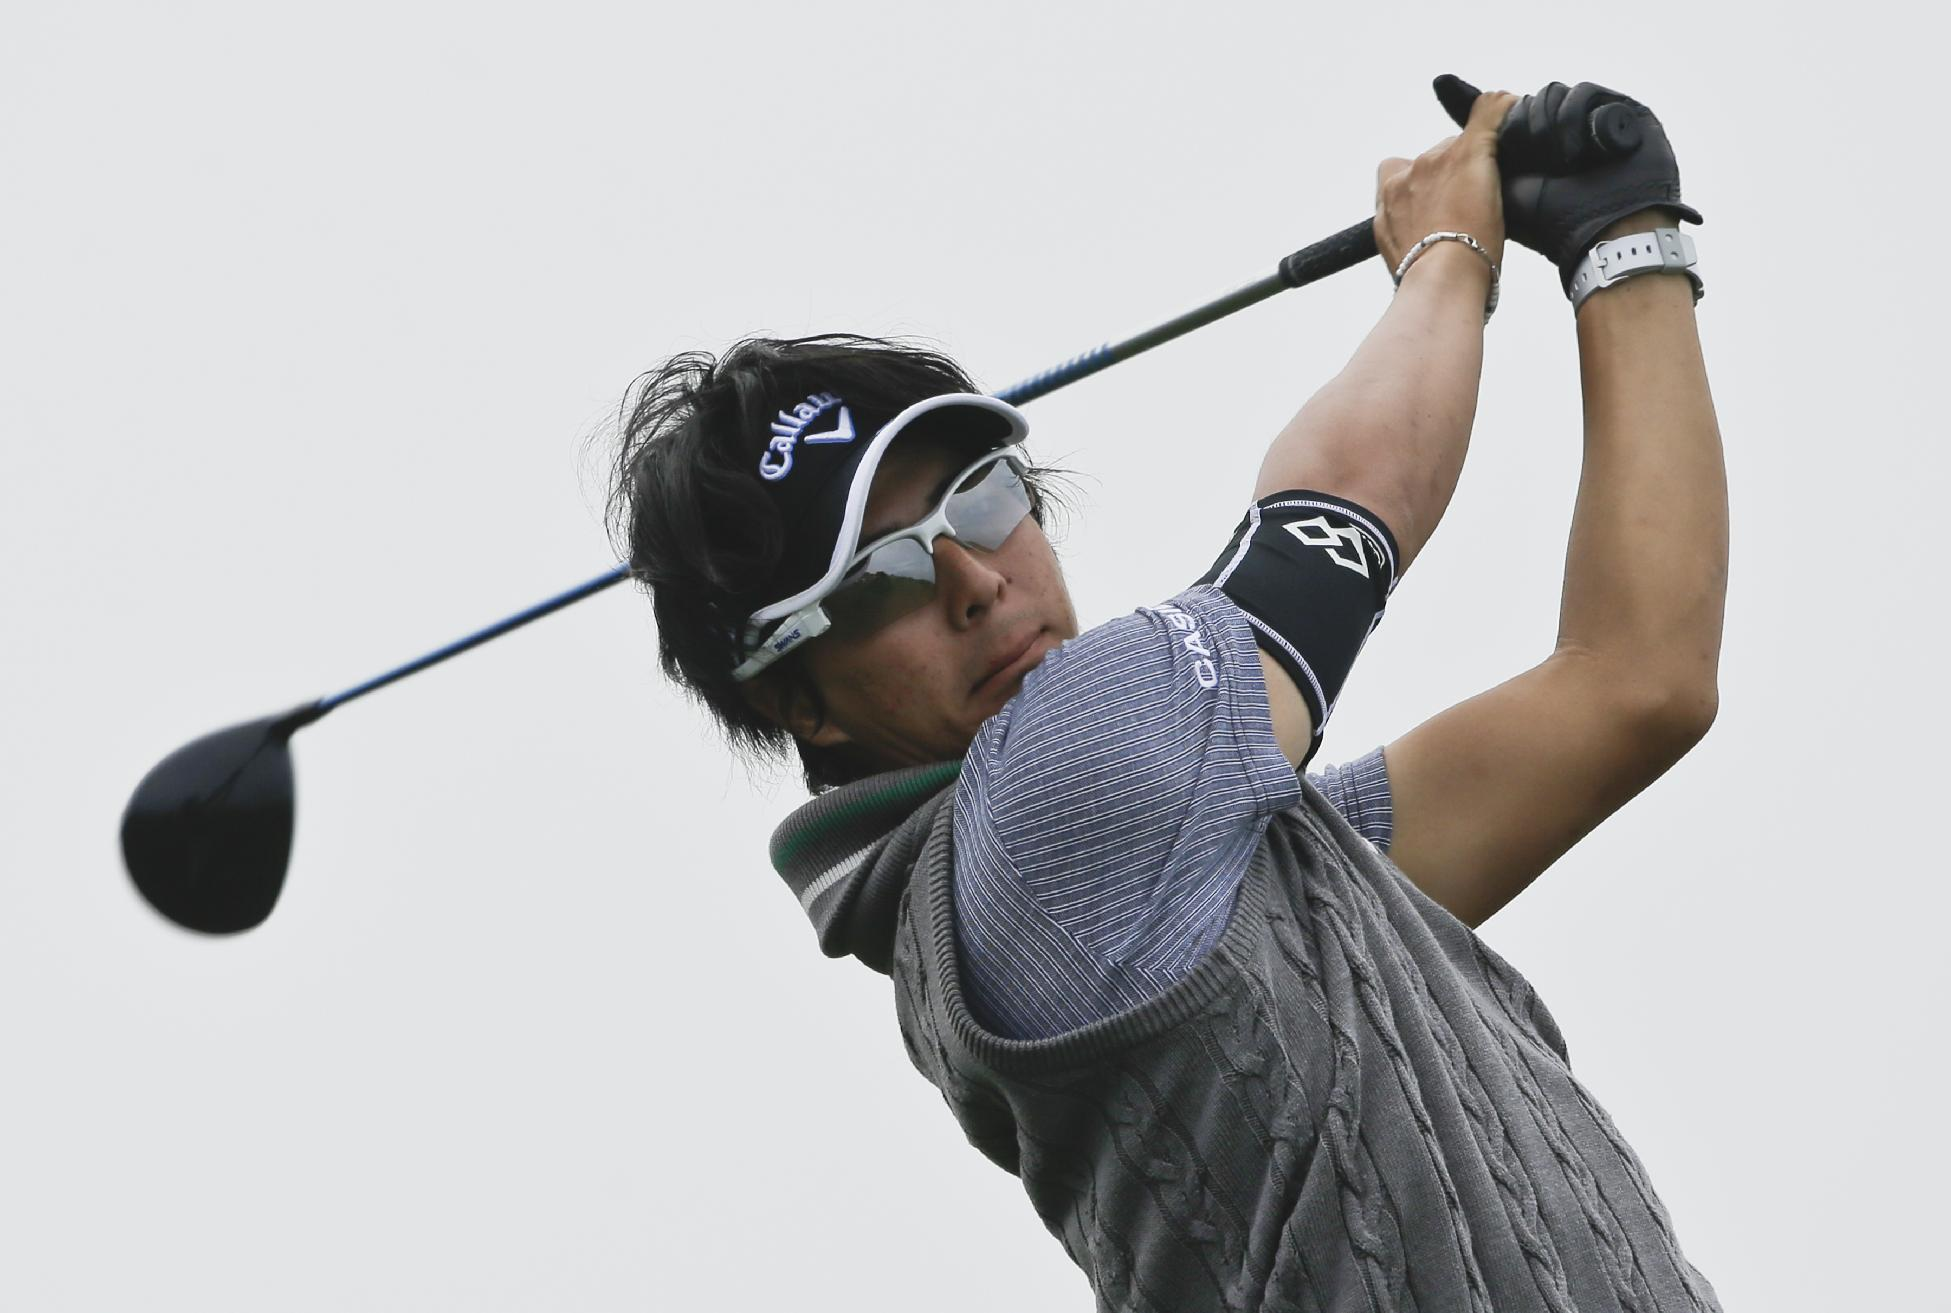 Ryo Ishikawa, of Japan, hits the ball on the 4th hole of the South Course at Torrey Pines during the final round of the Farmers Insurance Open golf tournament Sunday, Jan. 26, 2014, in San Diego